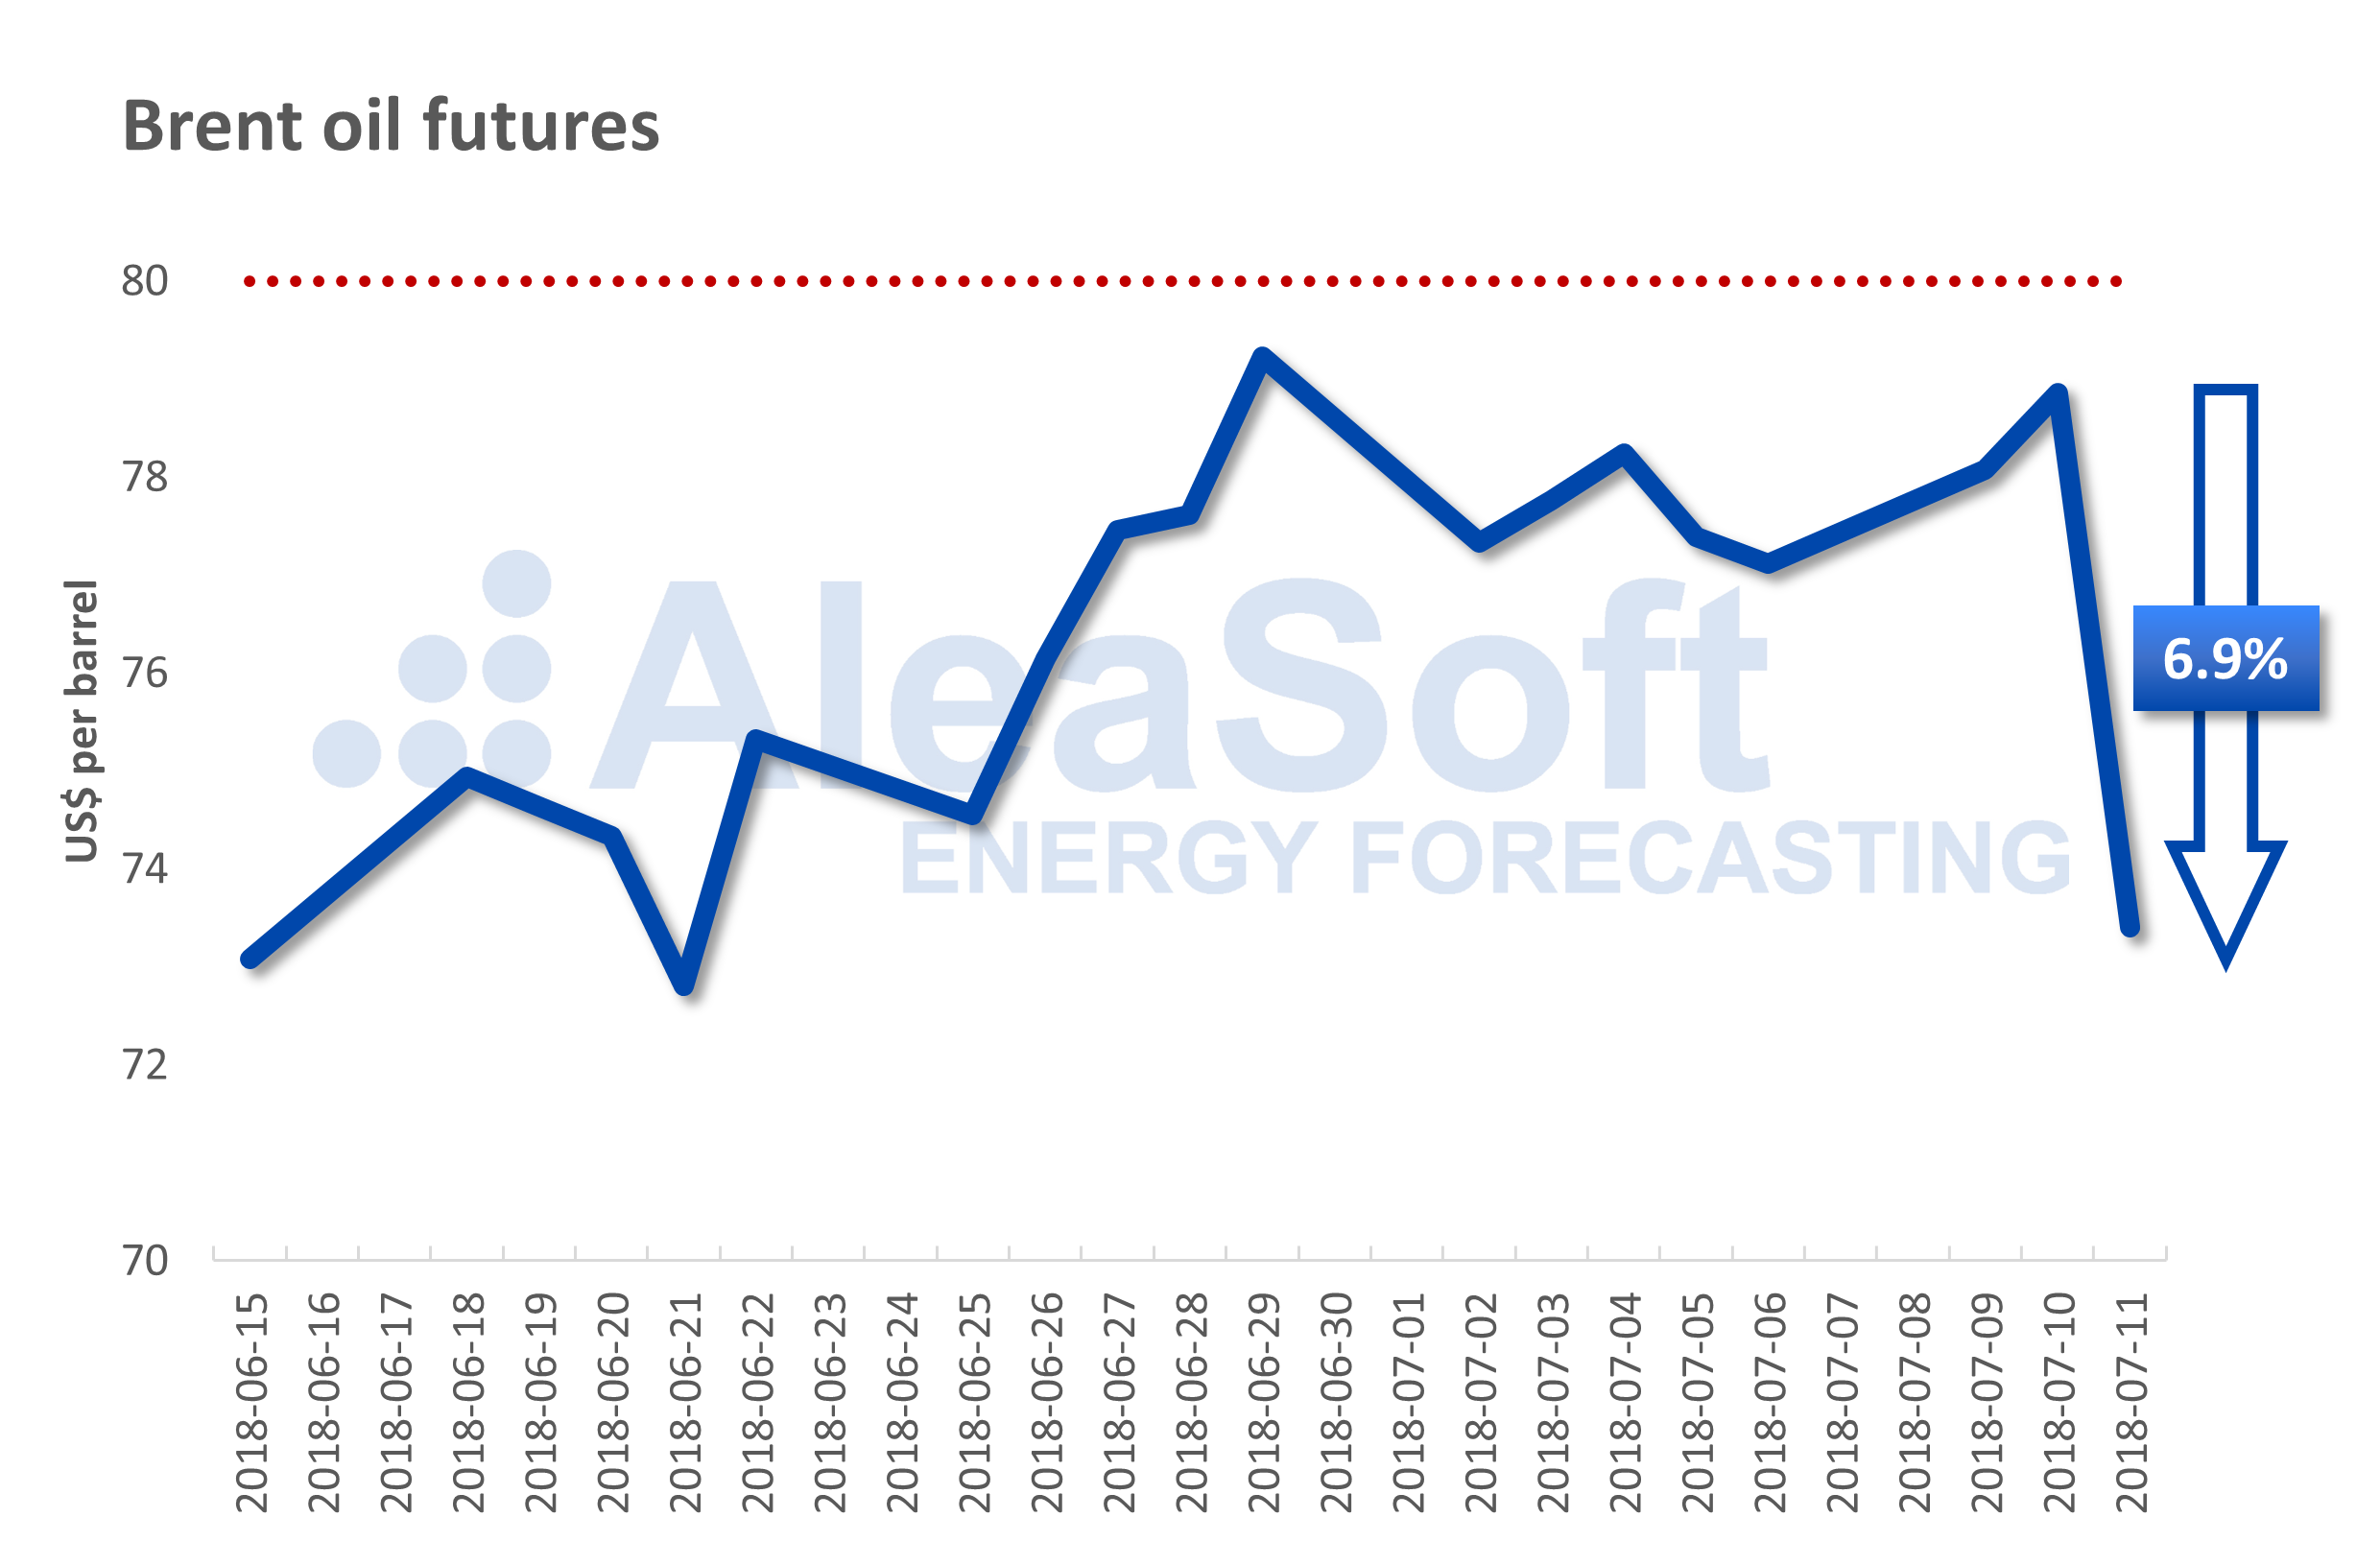 AleaSoft - Brent oil futures prices